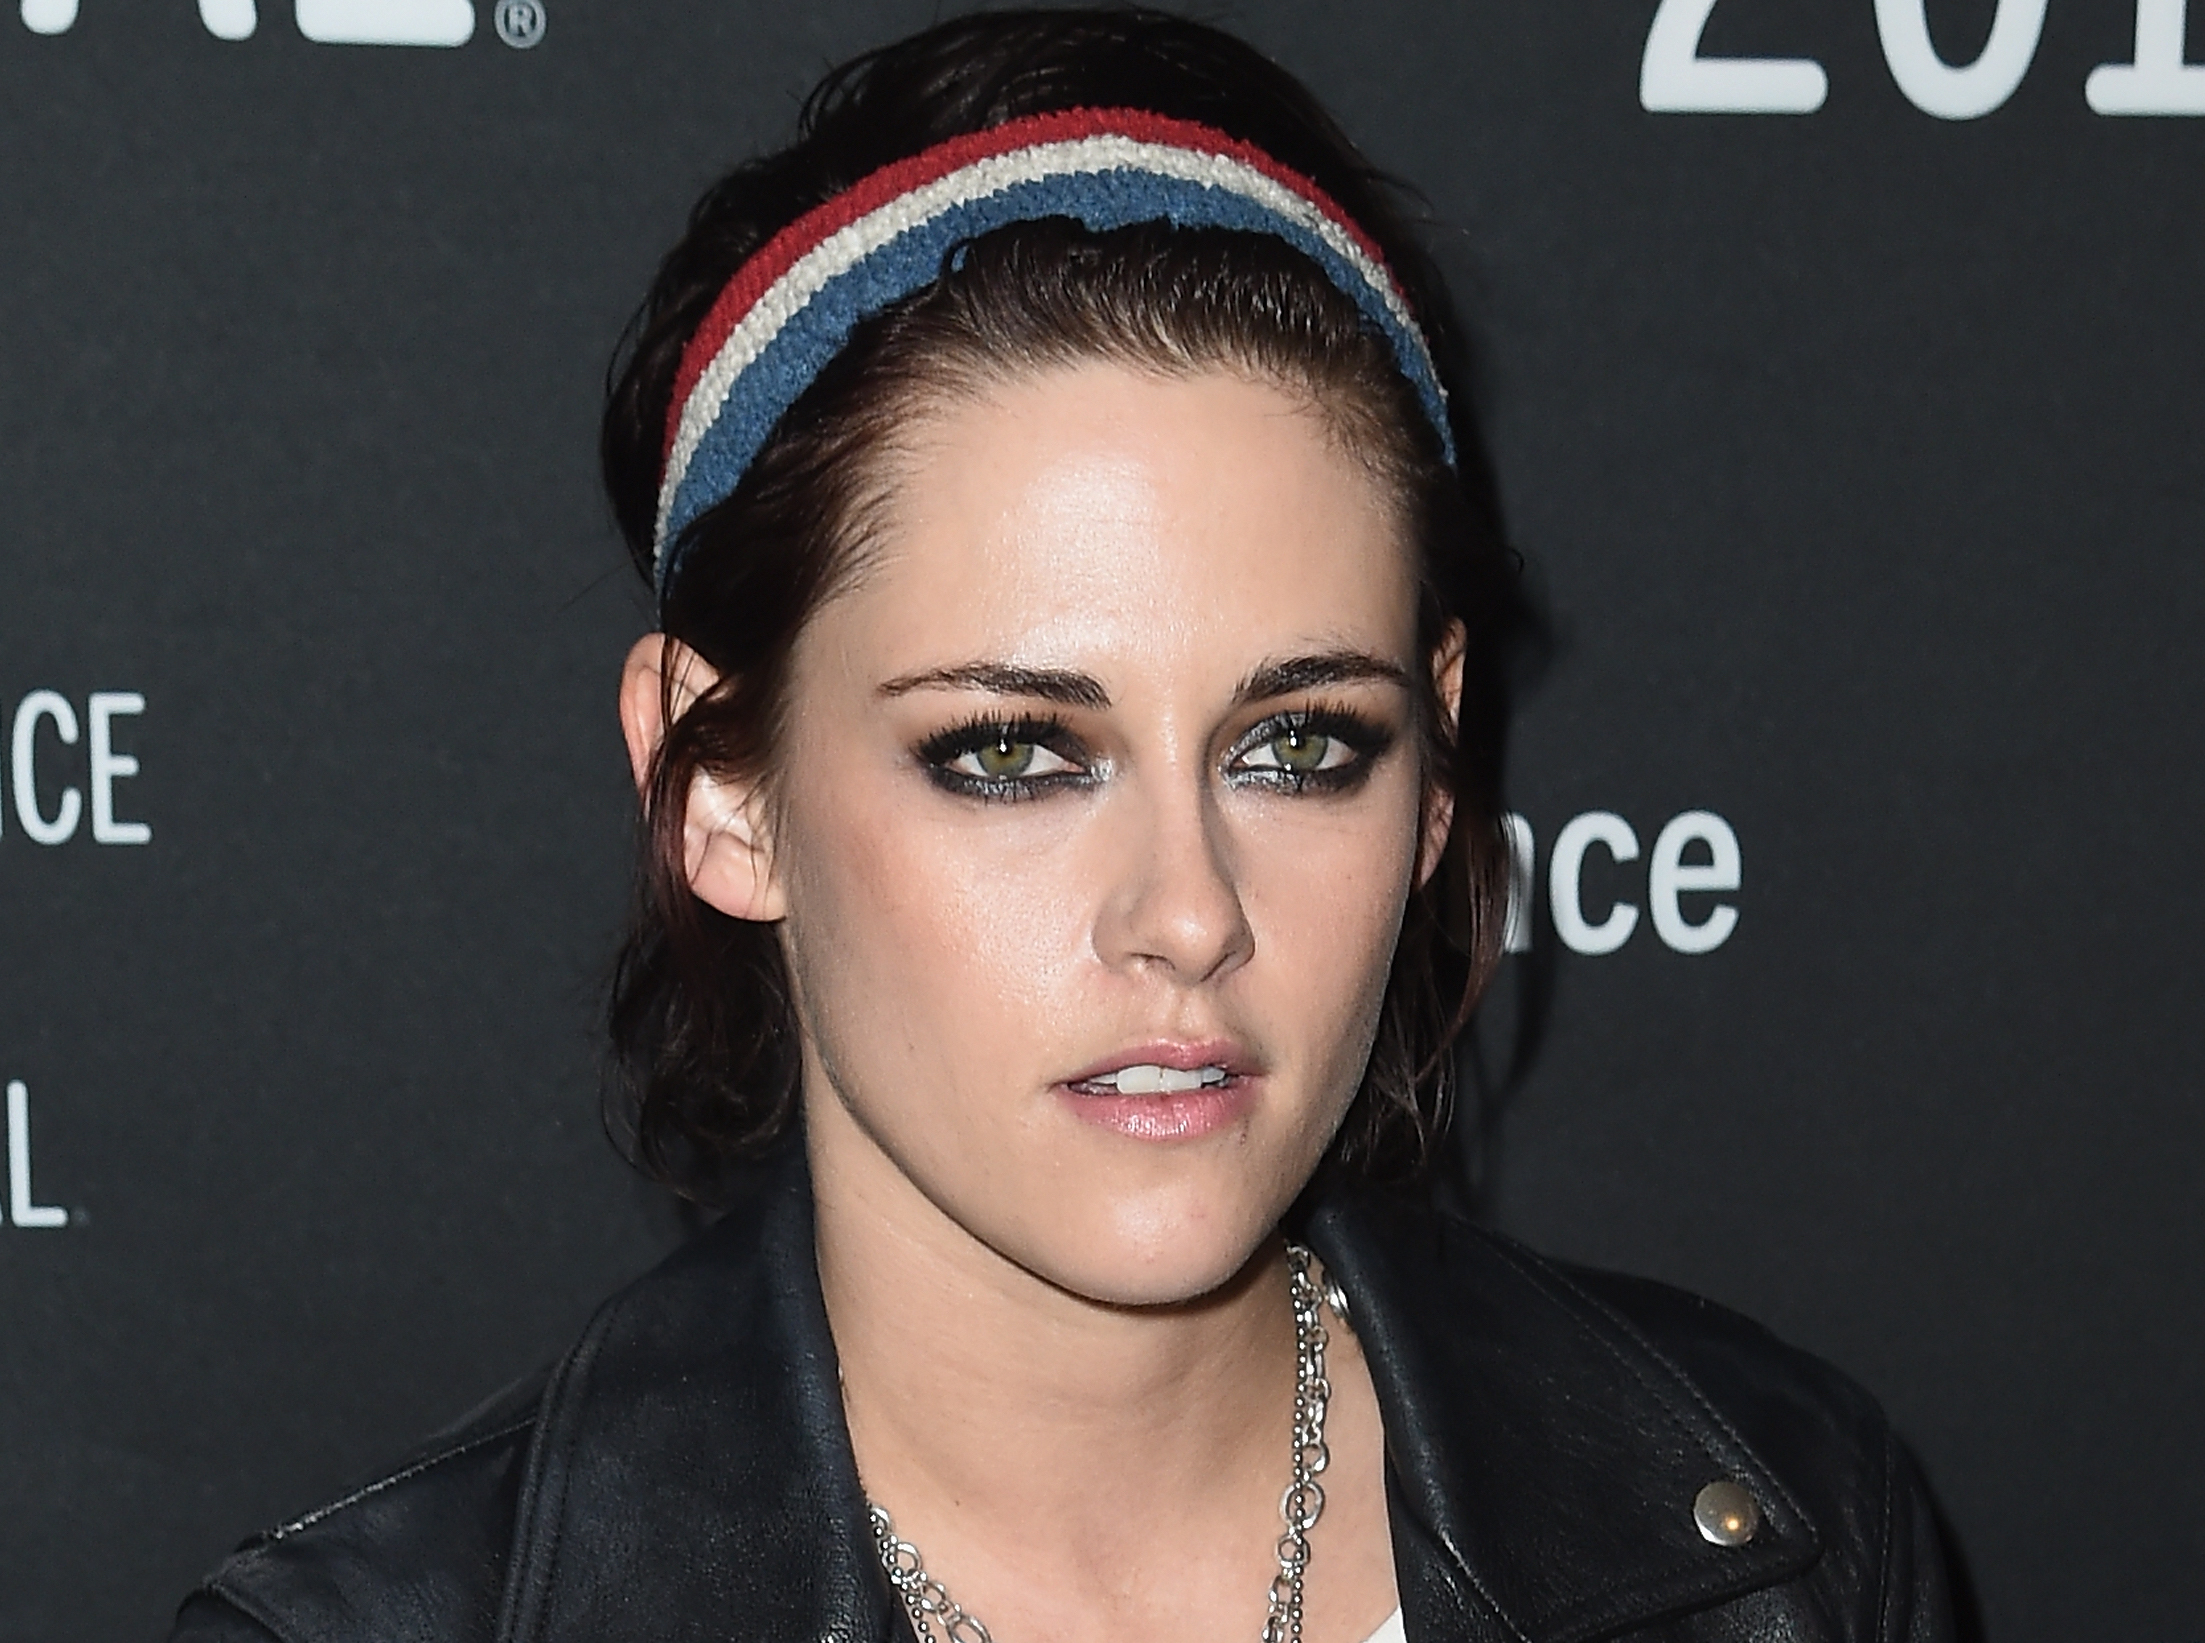 We already want Kristen Stewart's SNL look and here's how to get it